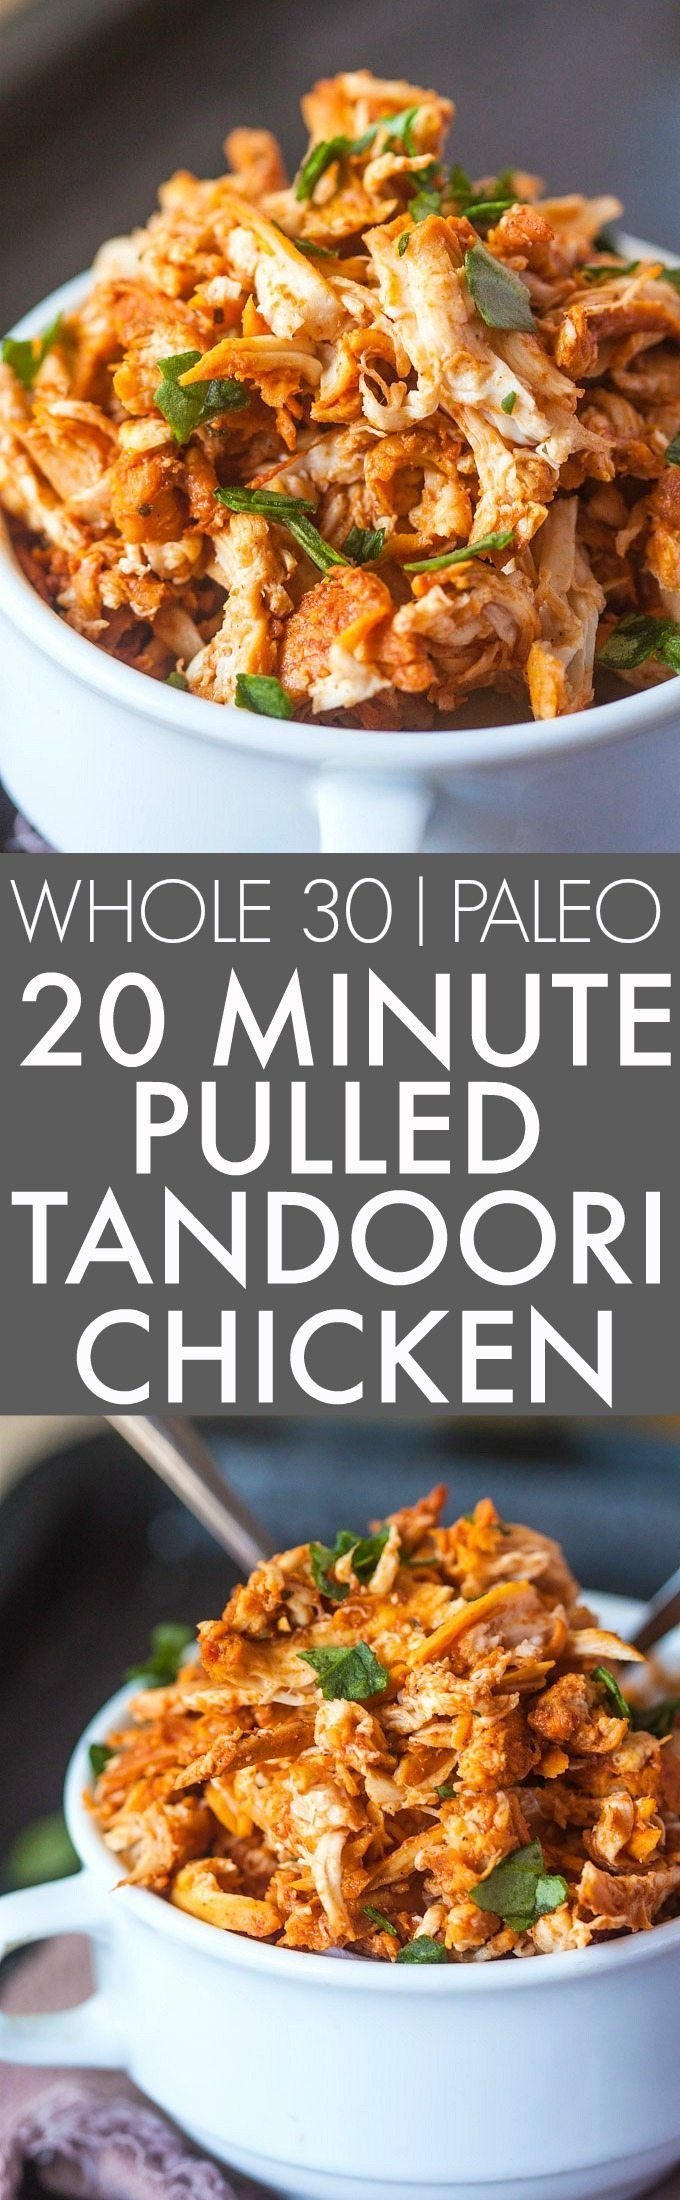 20 Minute Stovetop Pulled Tandoori Chicken (Whole 30, Paleo)- Whole30 Friendly juicy, moist and EASY pulled tandoori chicken perfect for a low carb, high protein and flavorful meal- Lunch, dinner and freezer friendly! {paleo, gluten free, whole30}- thebigmansworld.com